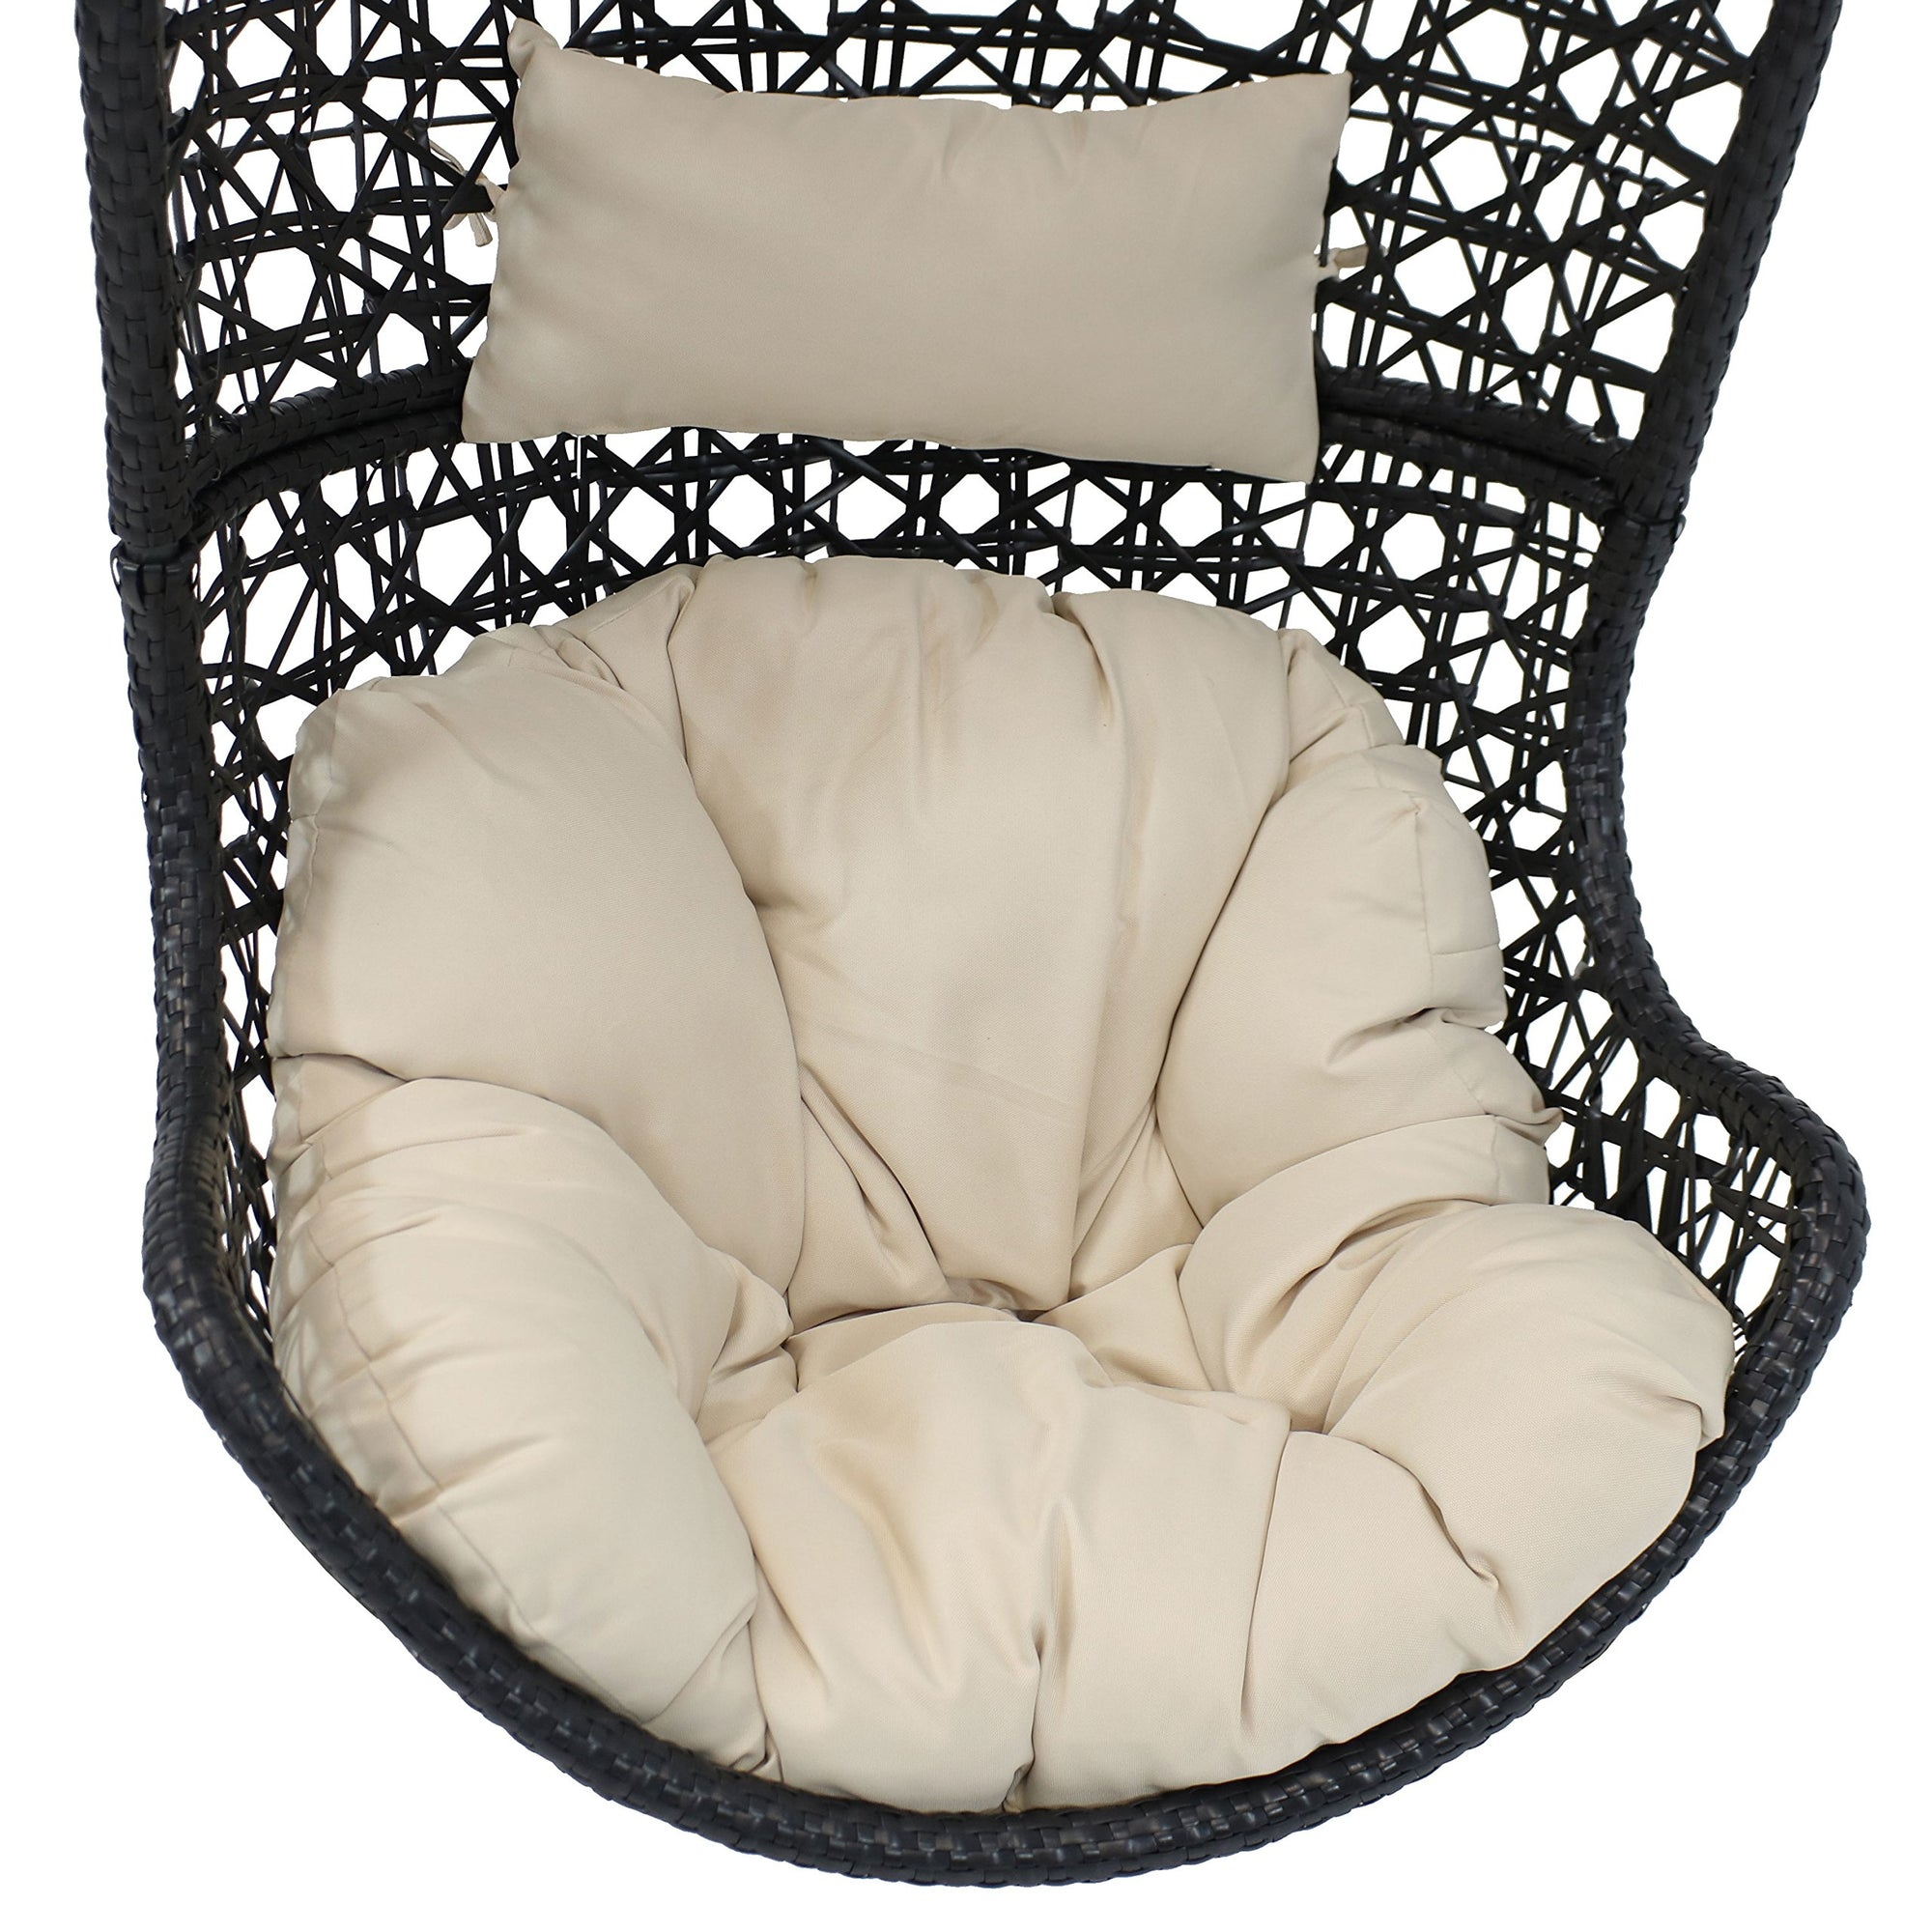 Island Gale Hanging Swing Chair Cushion with 1 Free Headrest Pillow